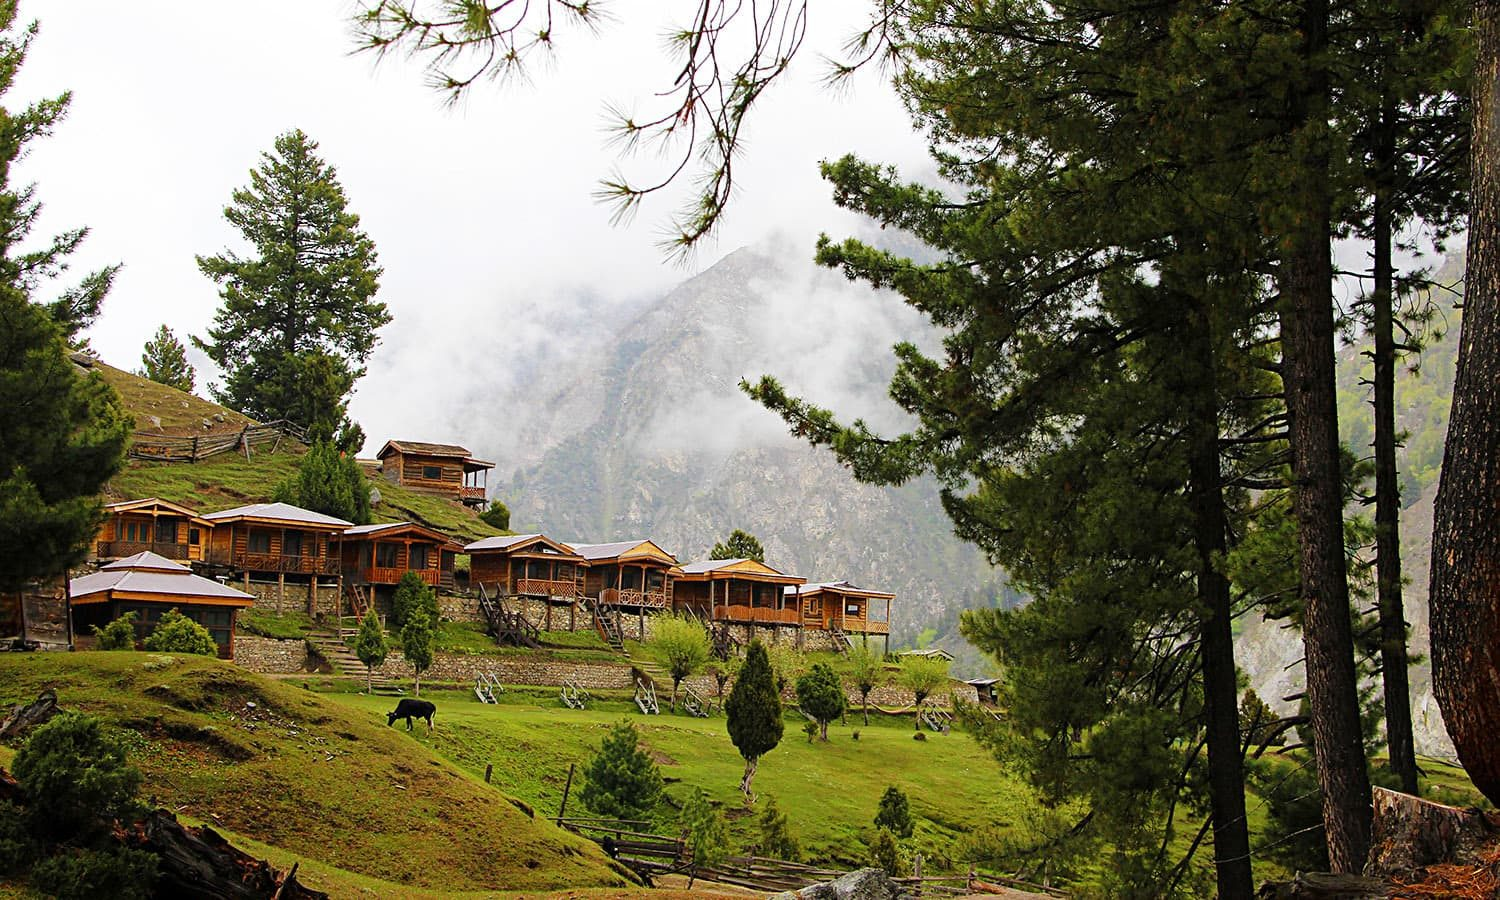 A view at Fairy Meadows